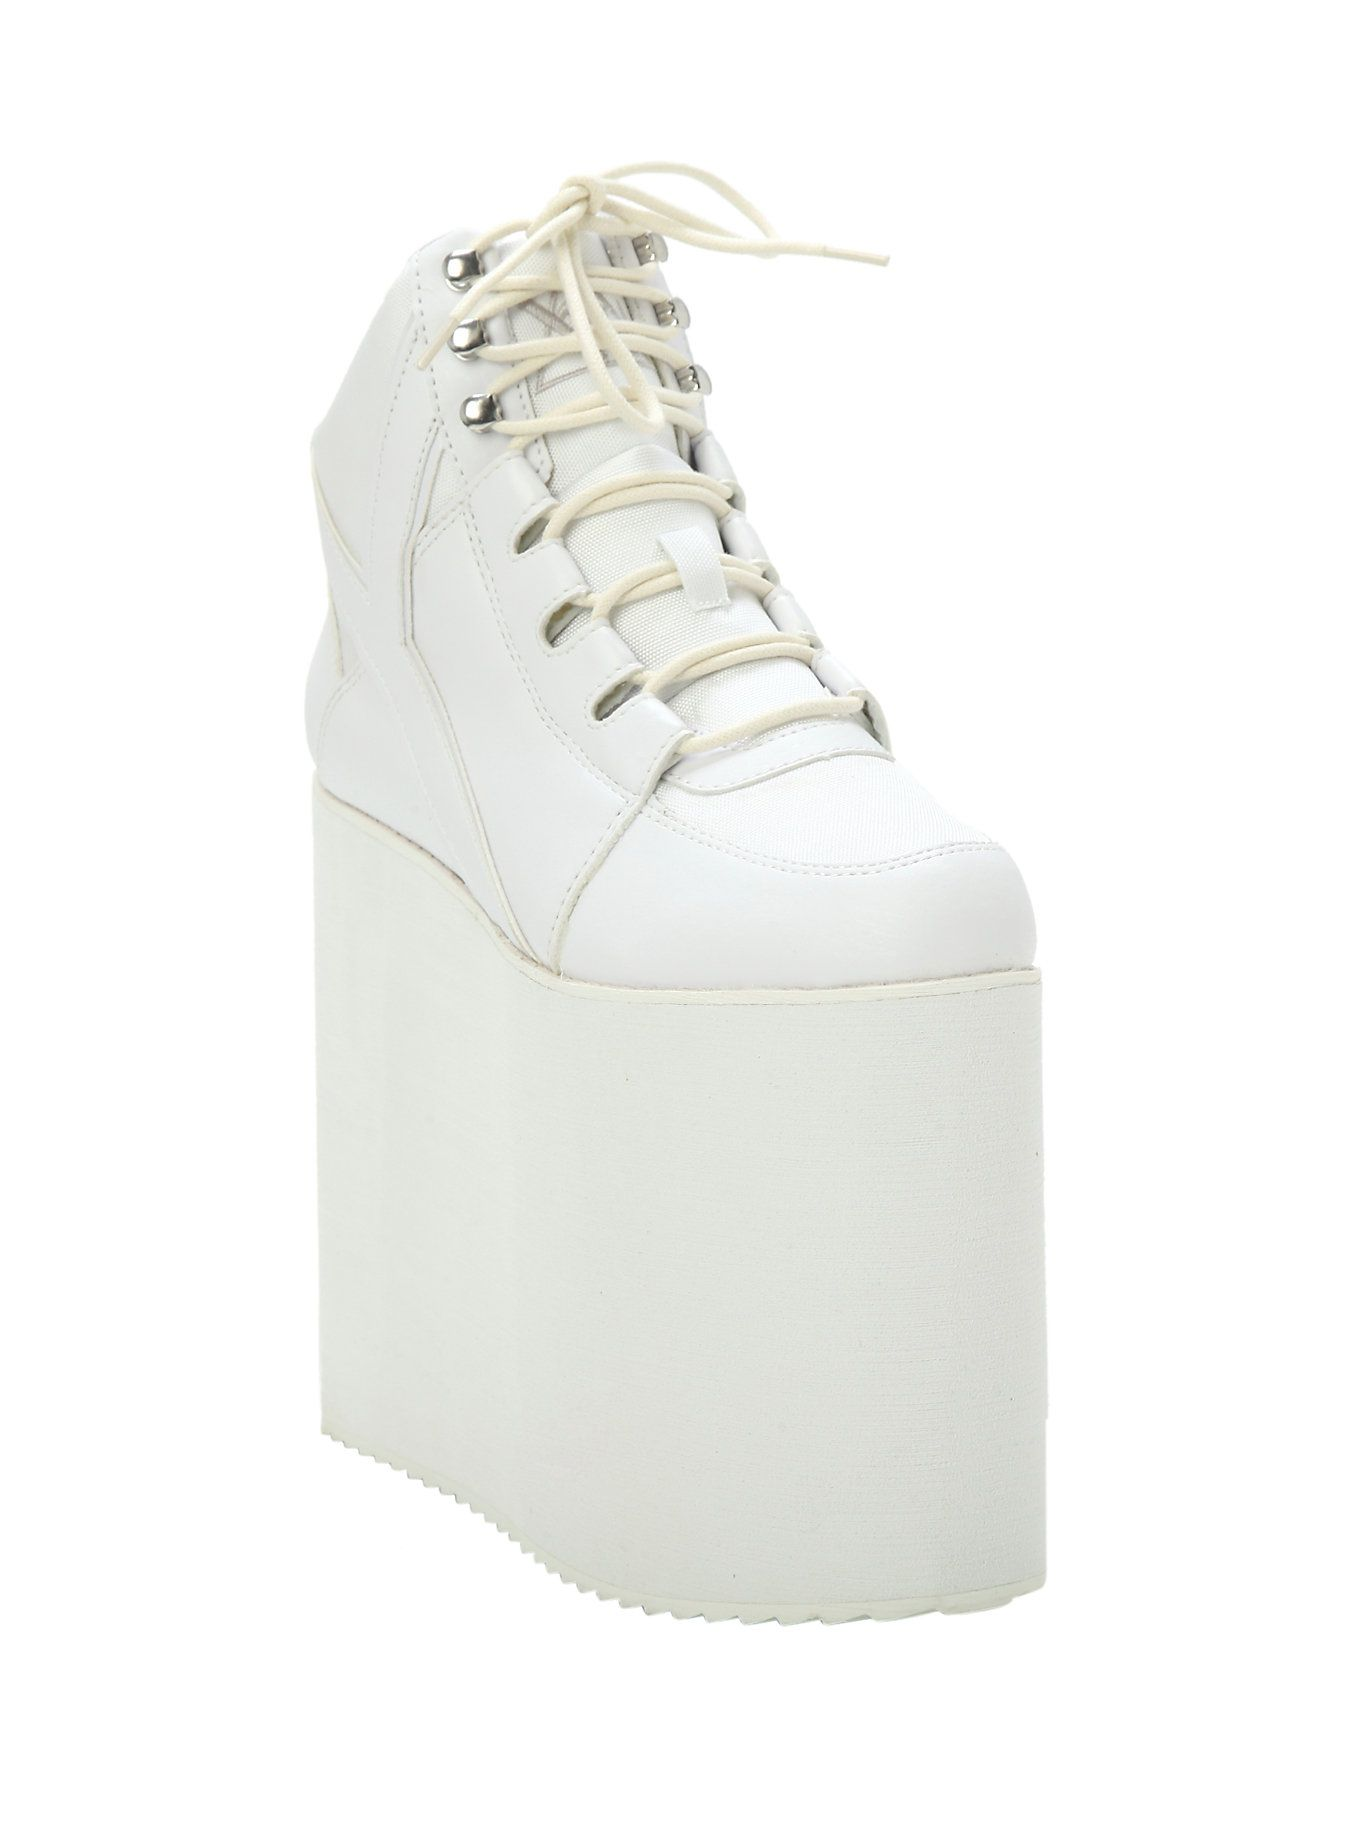 af1dc0c50e36e Yru Qozmo Sky-Hi white platform sneakers | Really cute, reminds me ...